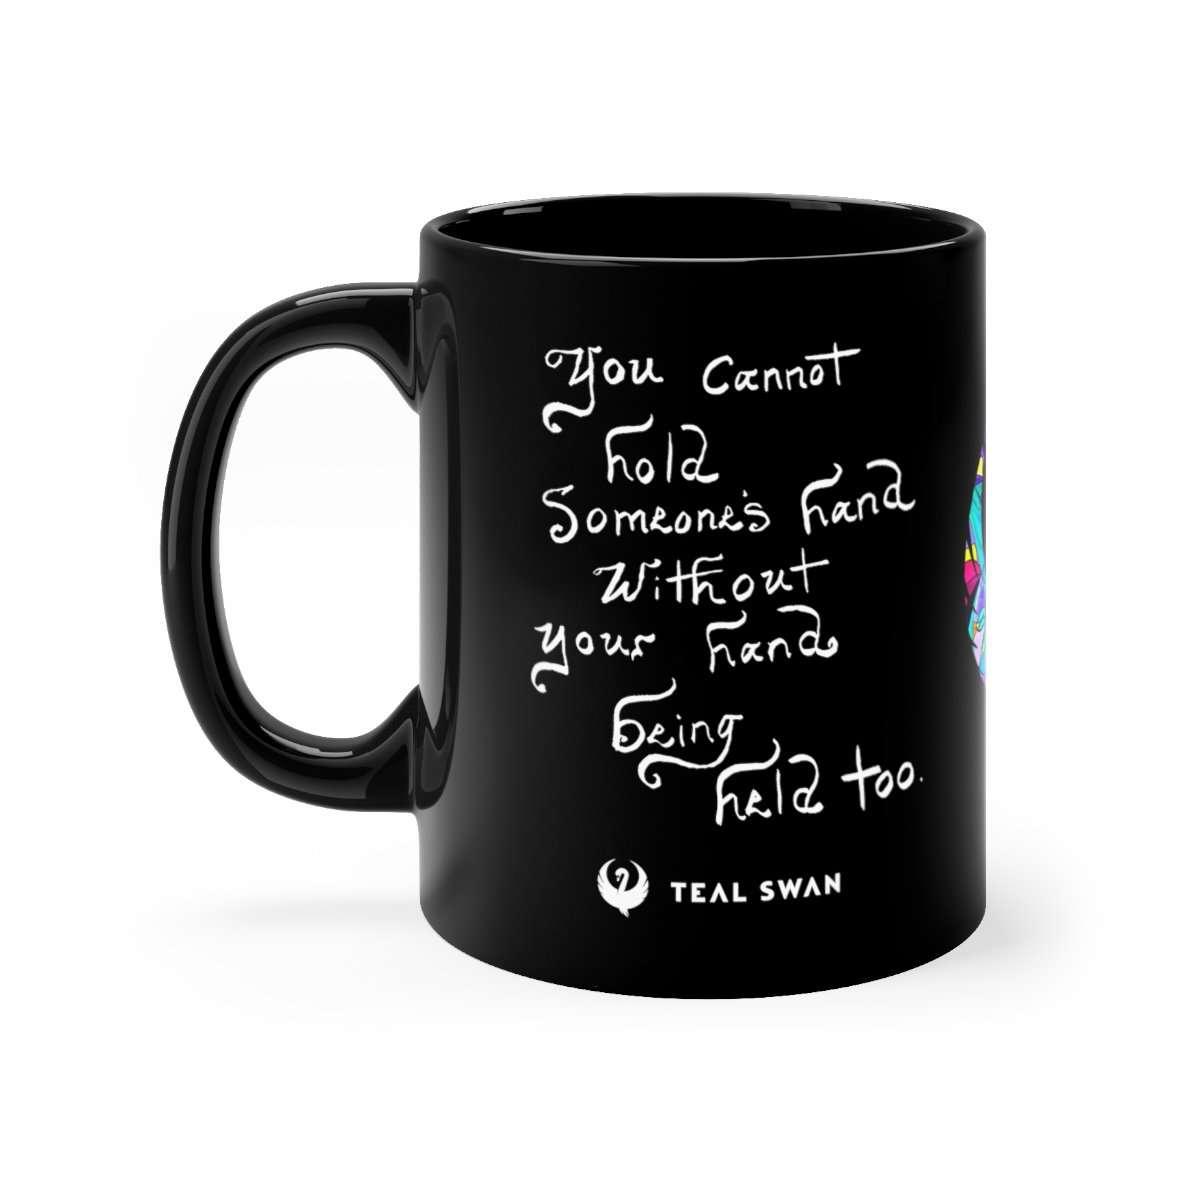 Hand Being Held Quote - Black mug 11oz